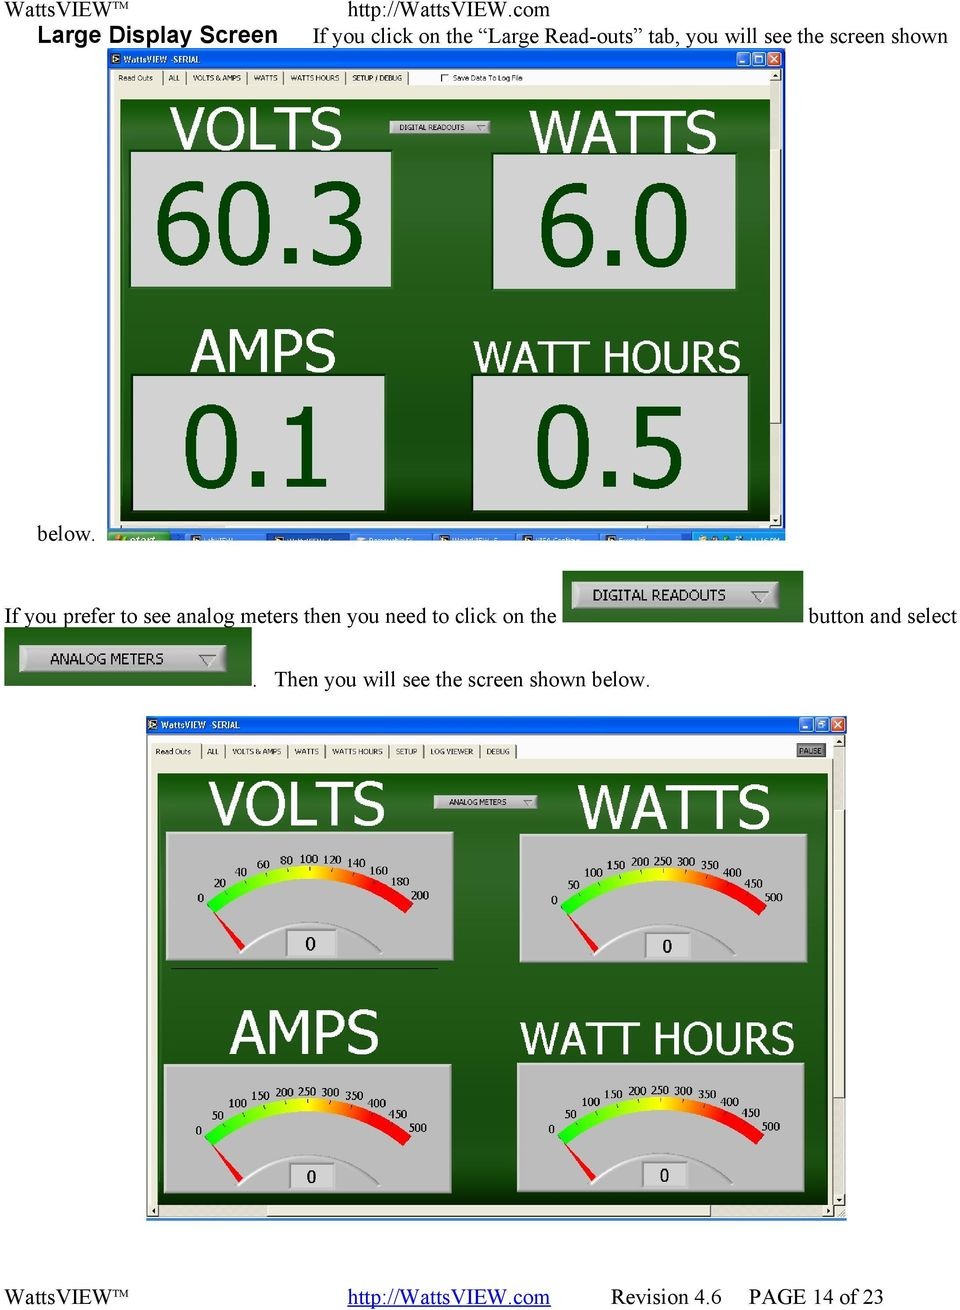 If you prefer to see analog meters then you need to click